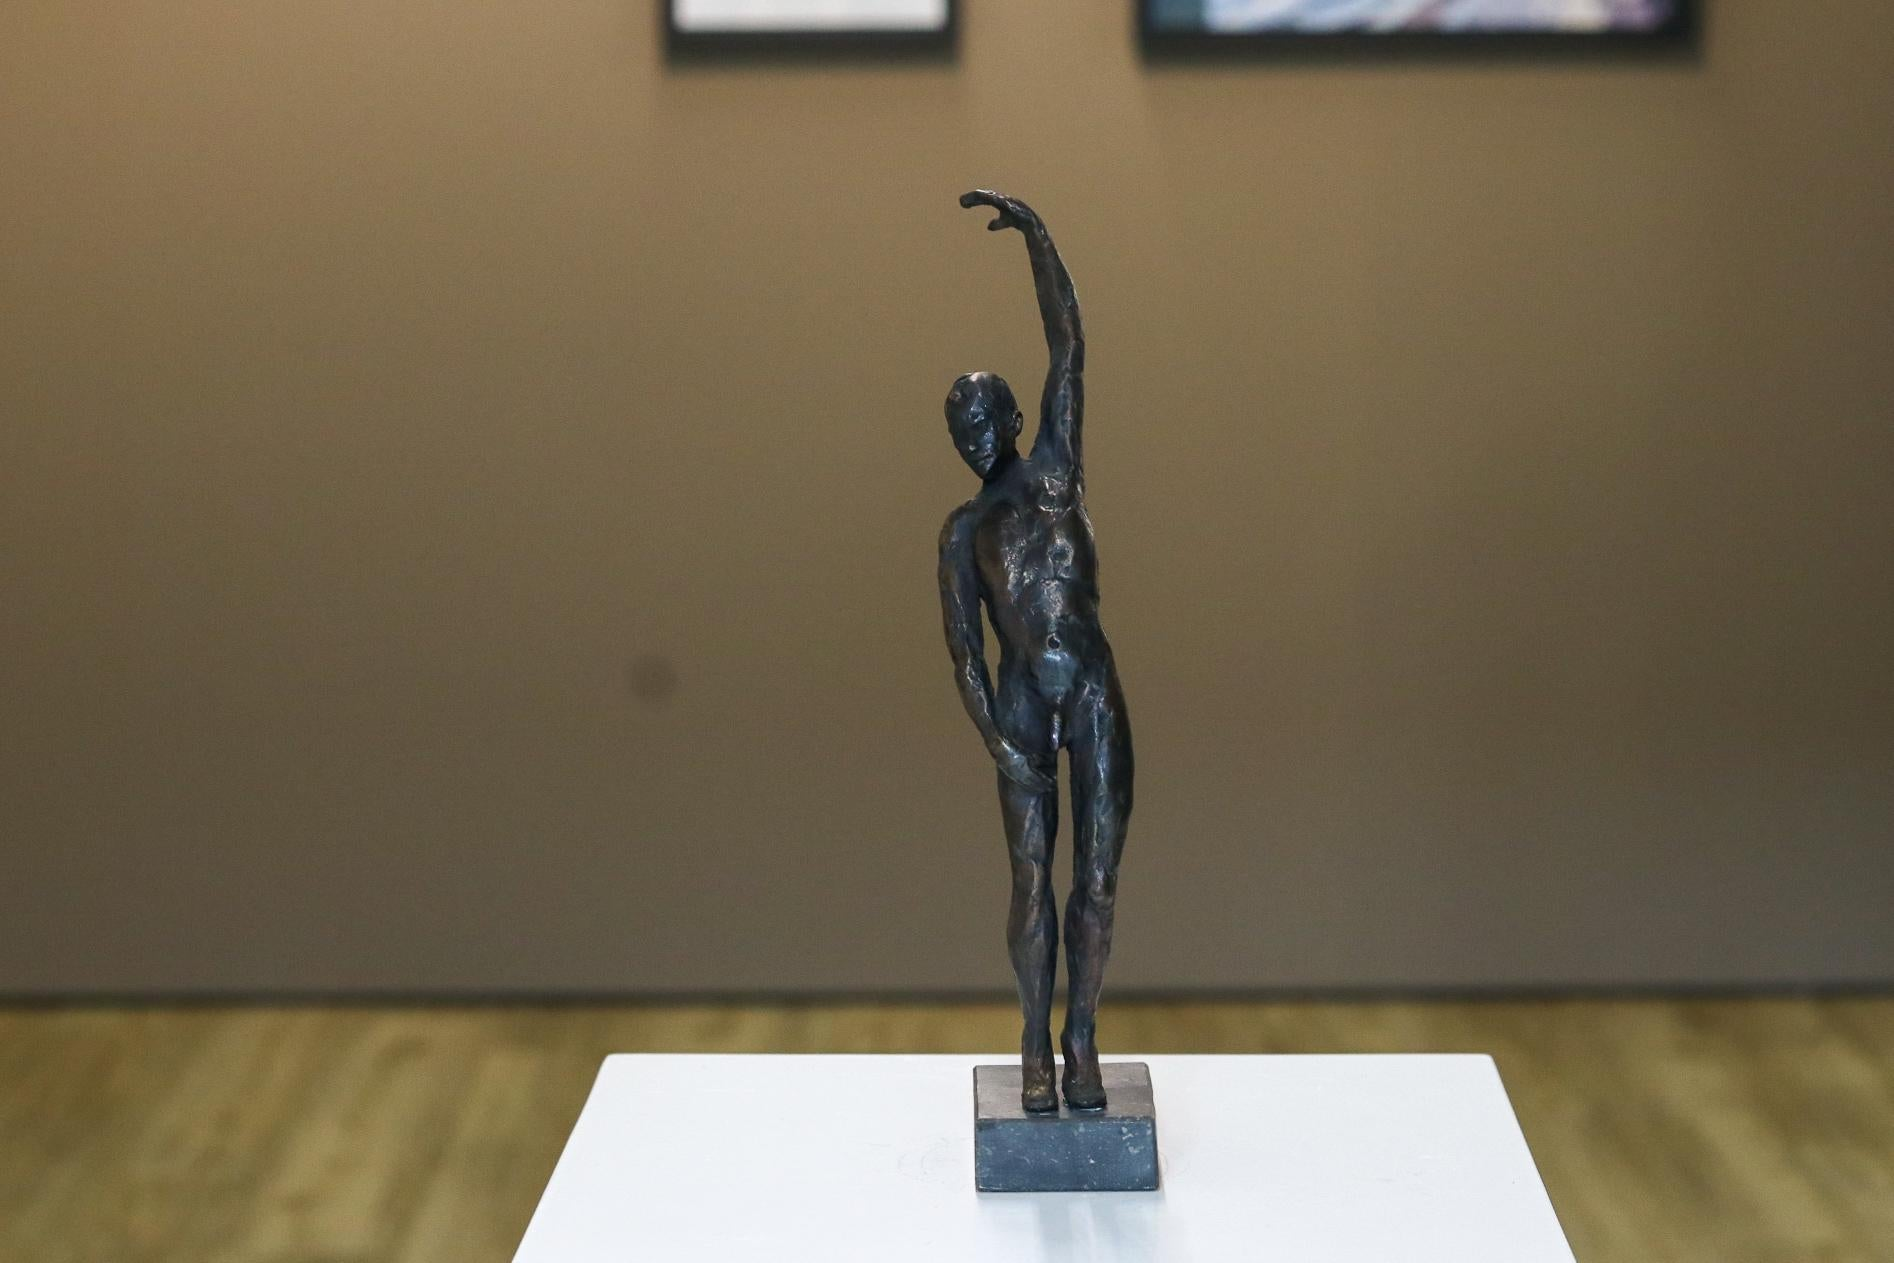 Male Nudity - 21st Century Contemporary Bronze Sculpture of a Nude Man Standing